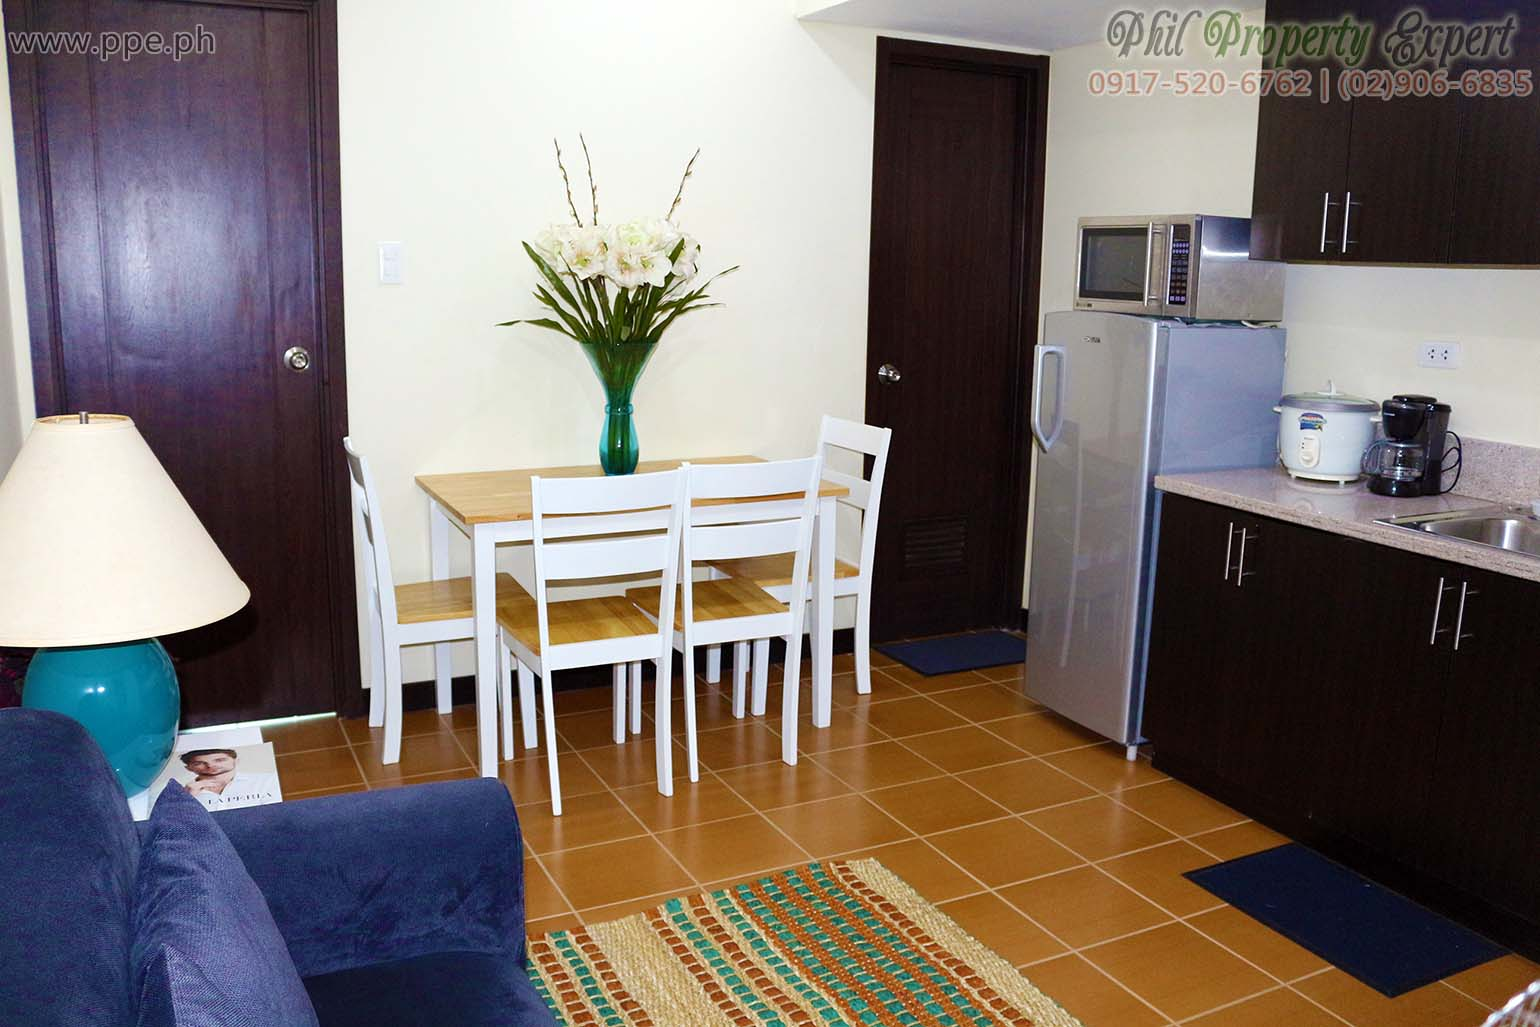 Affordable 1br condo for rent in makati san lorenzo place by affordable 1br condo for rent in makati san lorenzo place dailygadgetfo Gallery